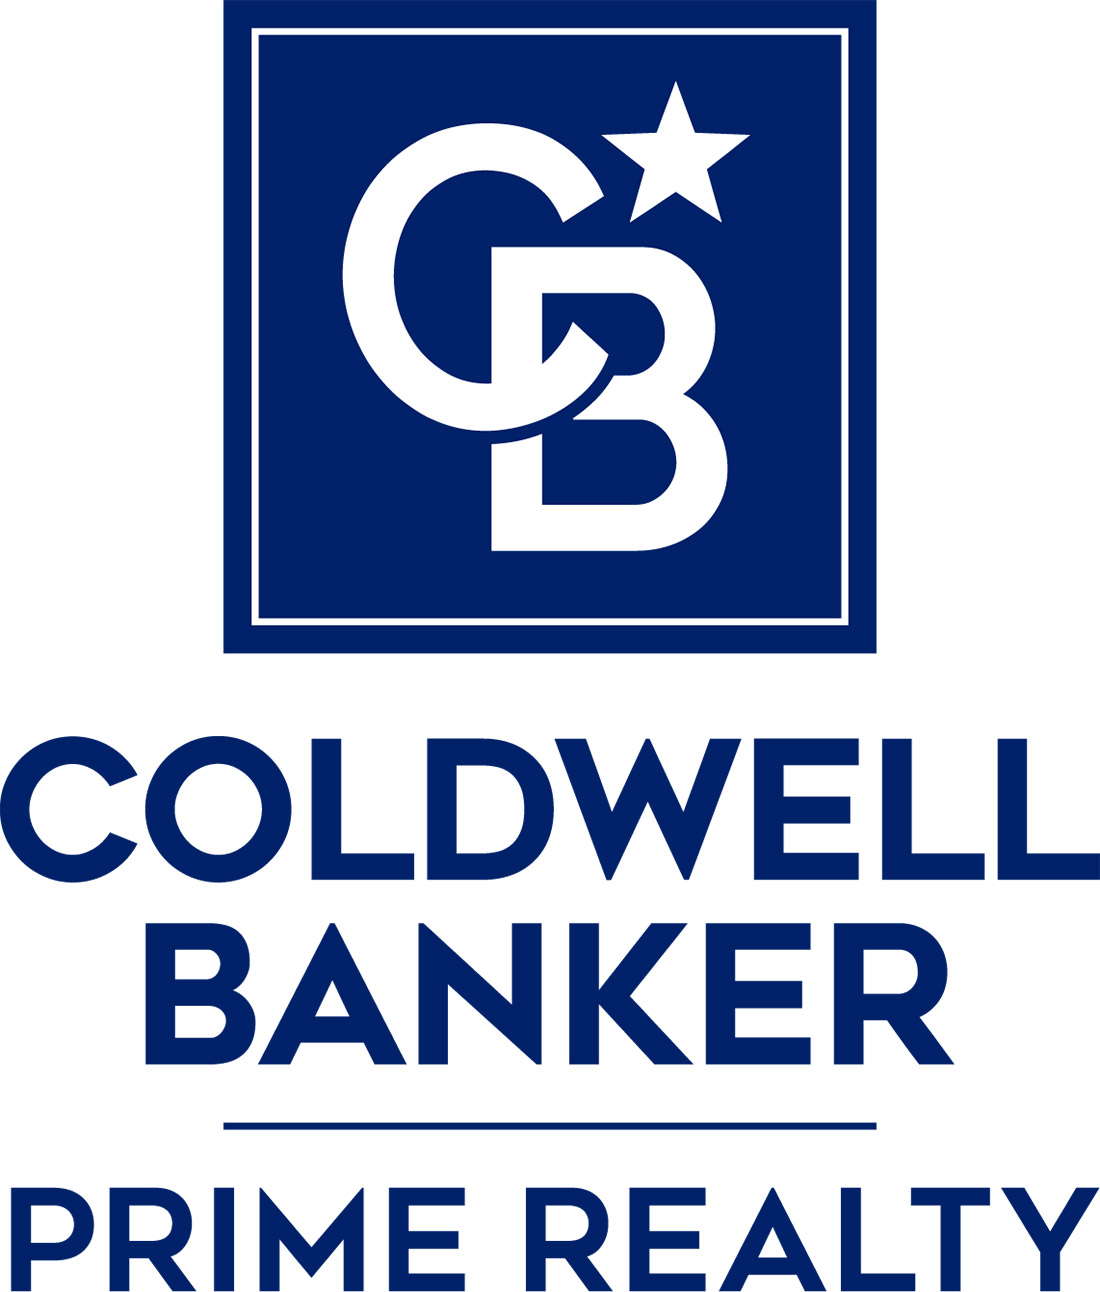 Nathan Marks - Coldwell Banker Prime Realty - Carbondale, IL Logo